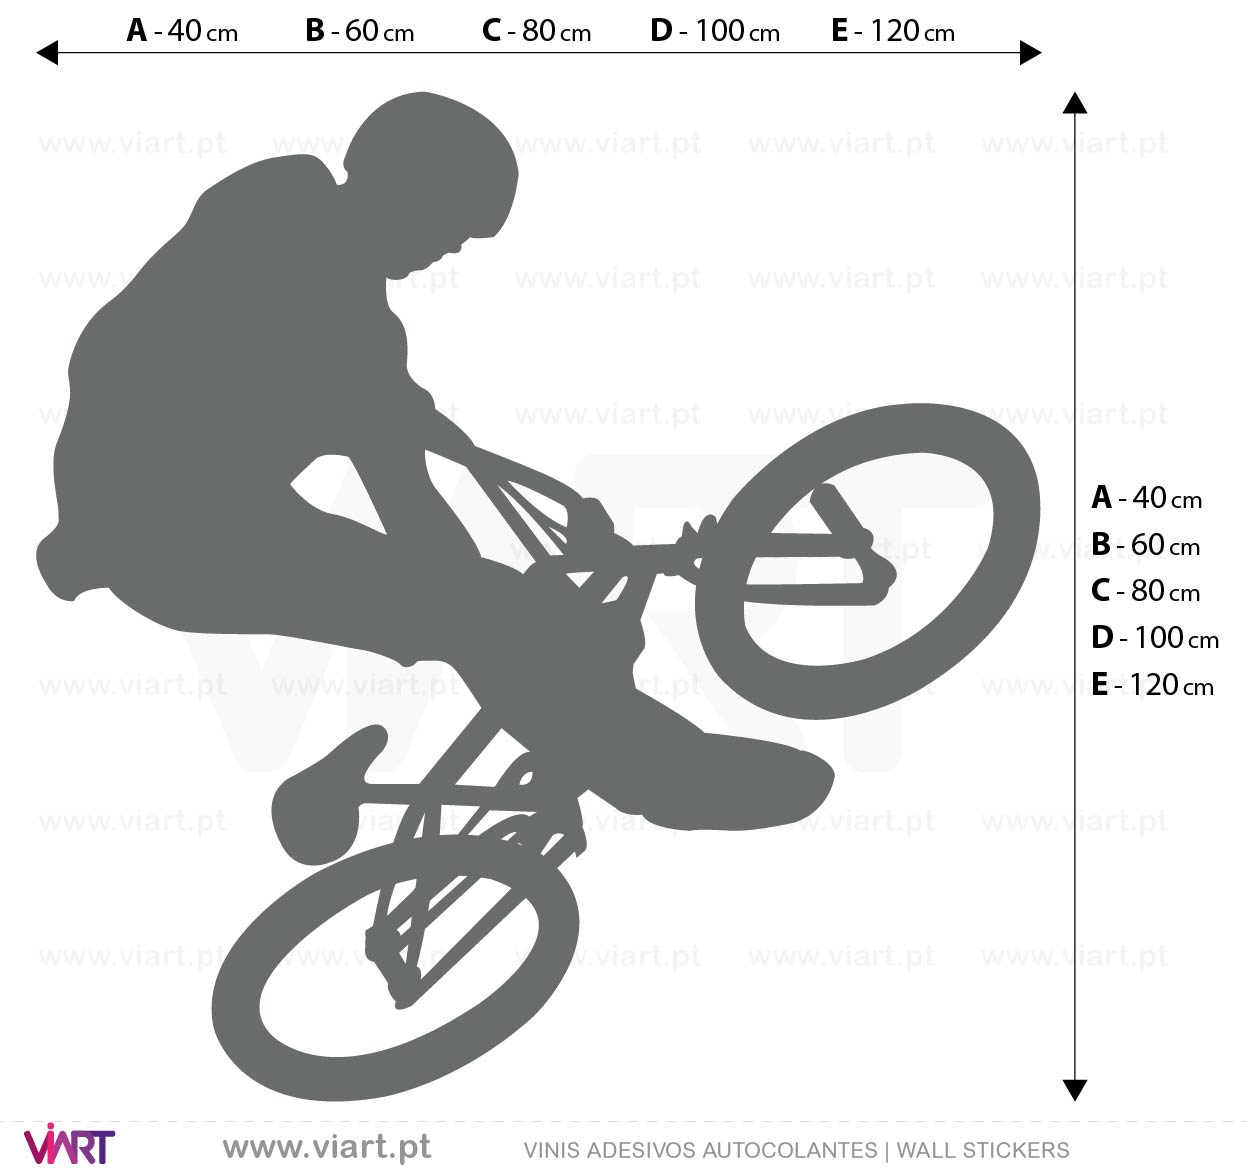 Viart - WALL STICKERS - Bicycle! Btt! Decal Measures